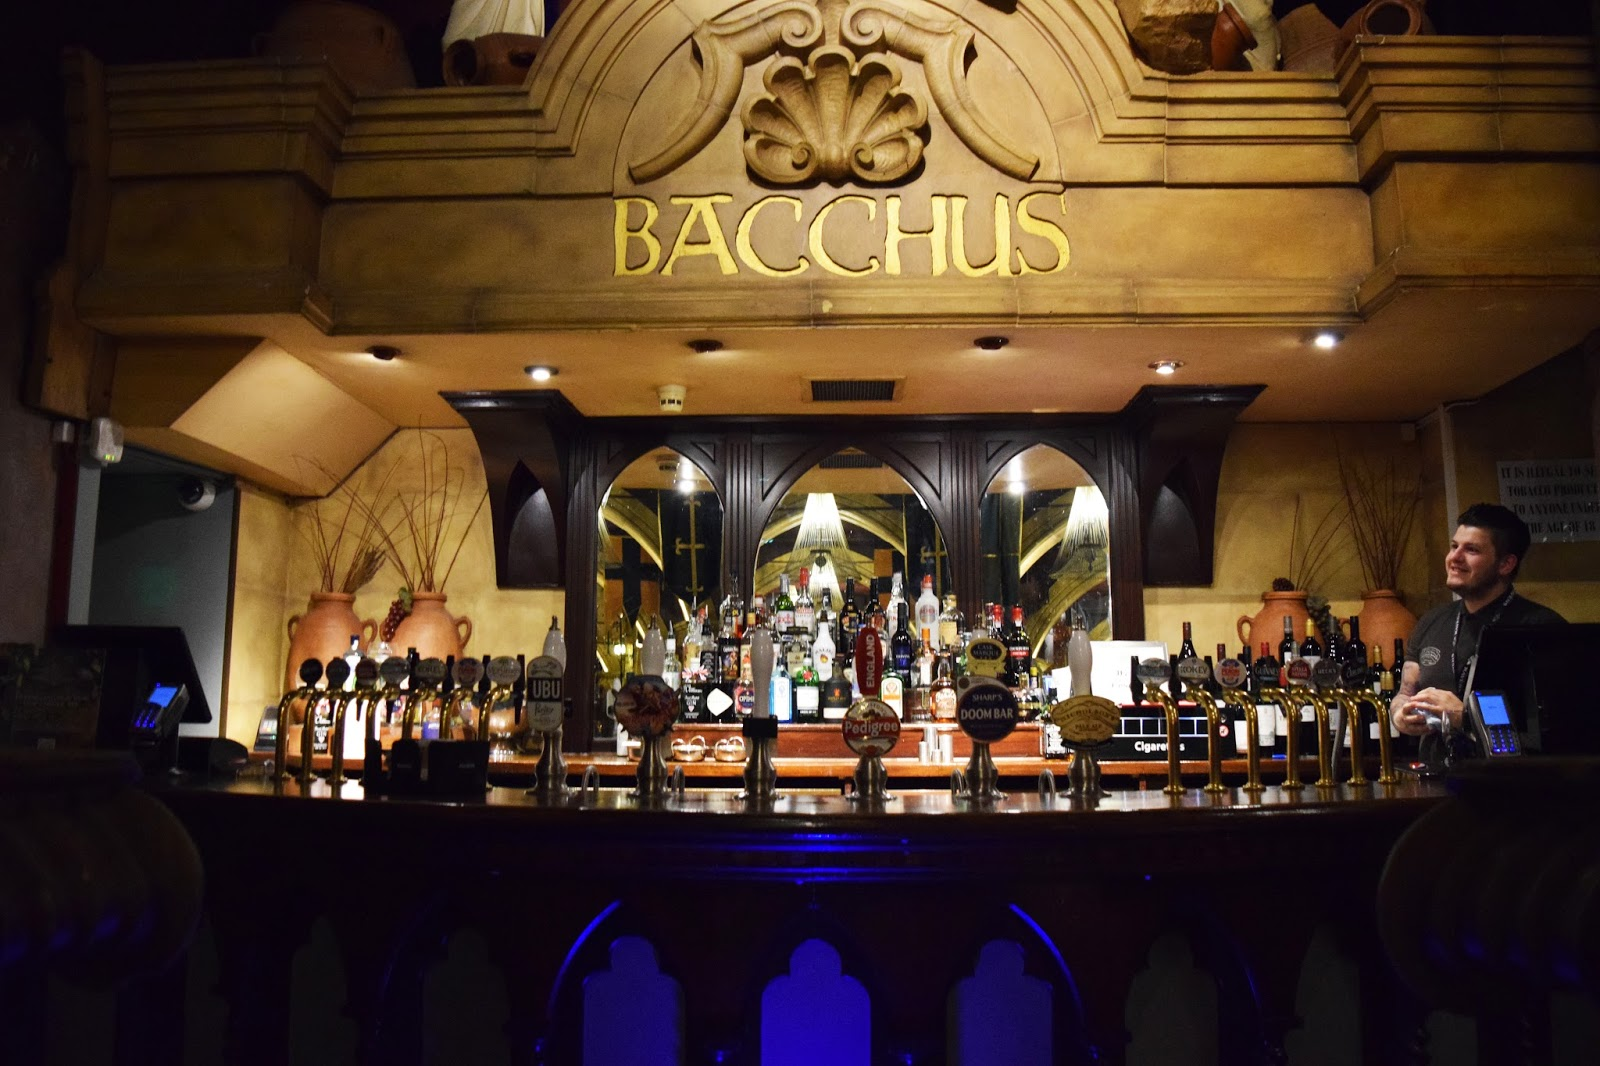 Bacchus bar birmingham gracebee for Food bar in birmingham al